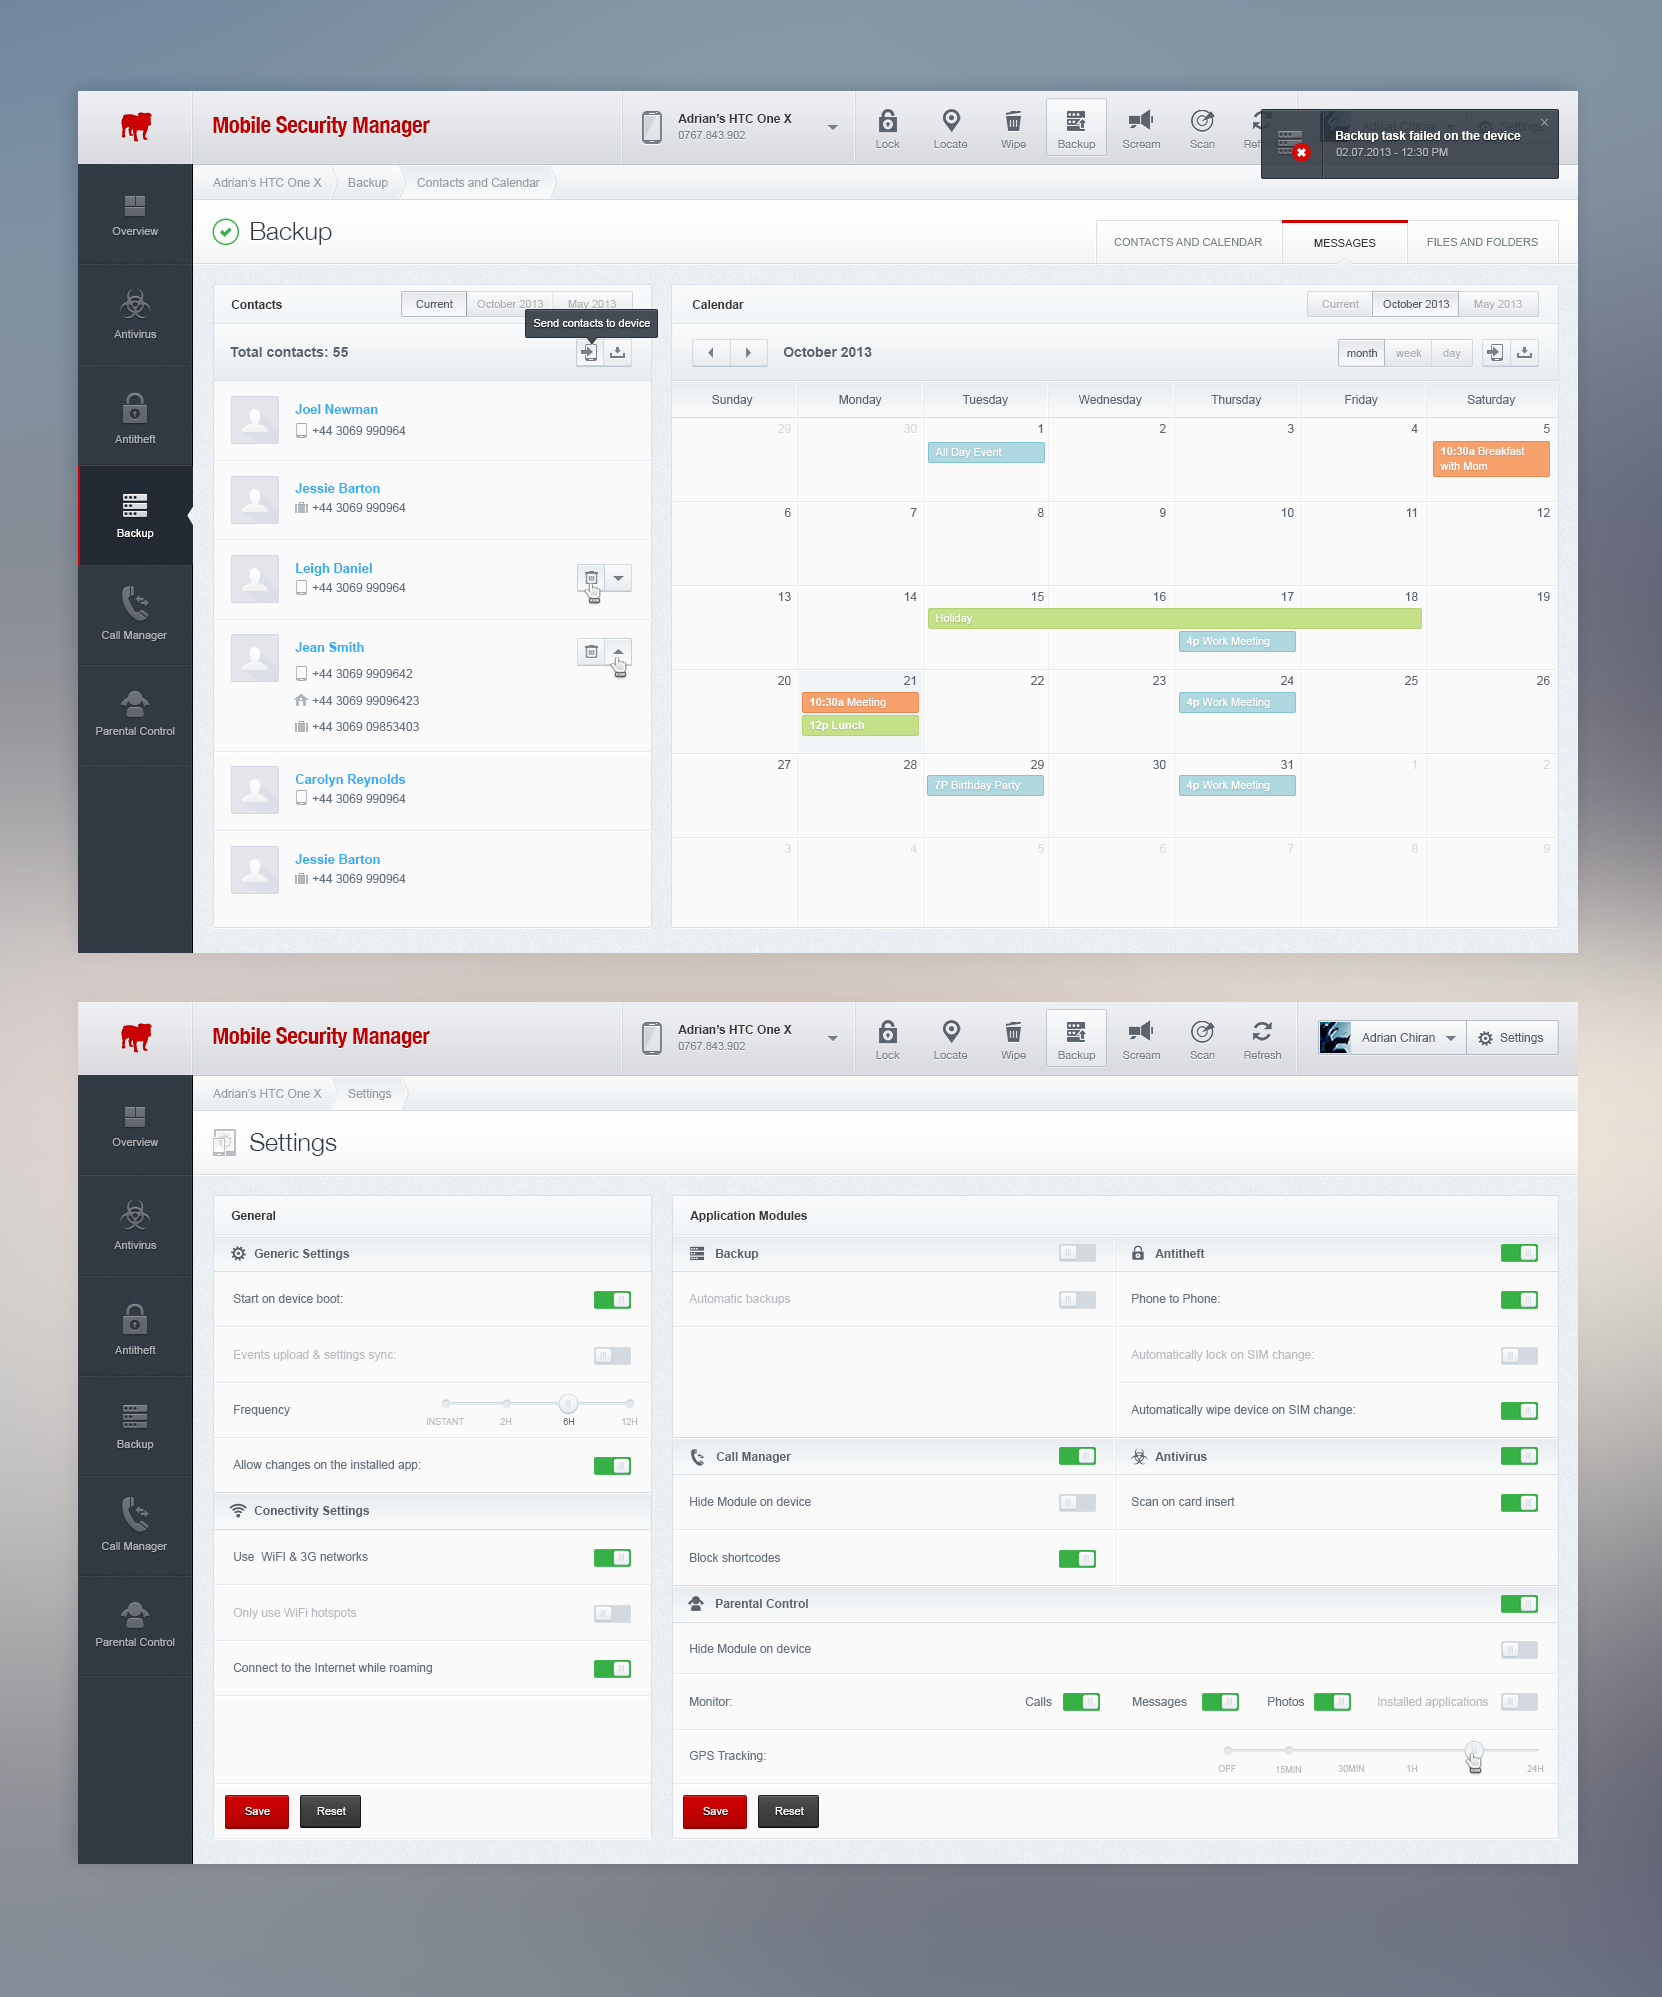 Mobile Security Manager Analytics Dashboards Dashboard